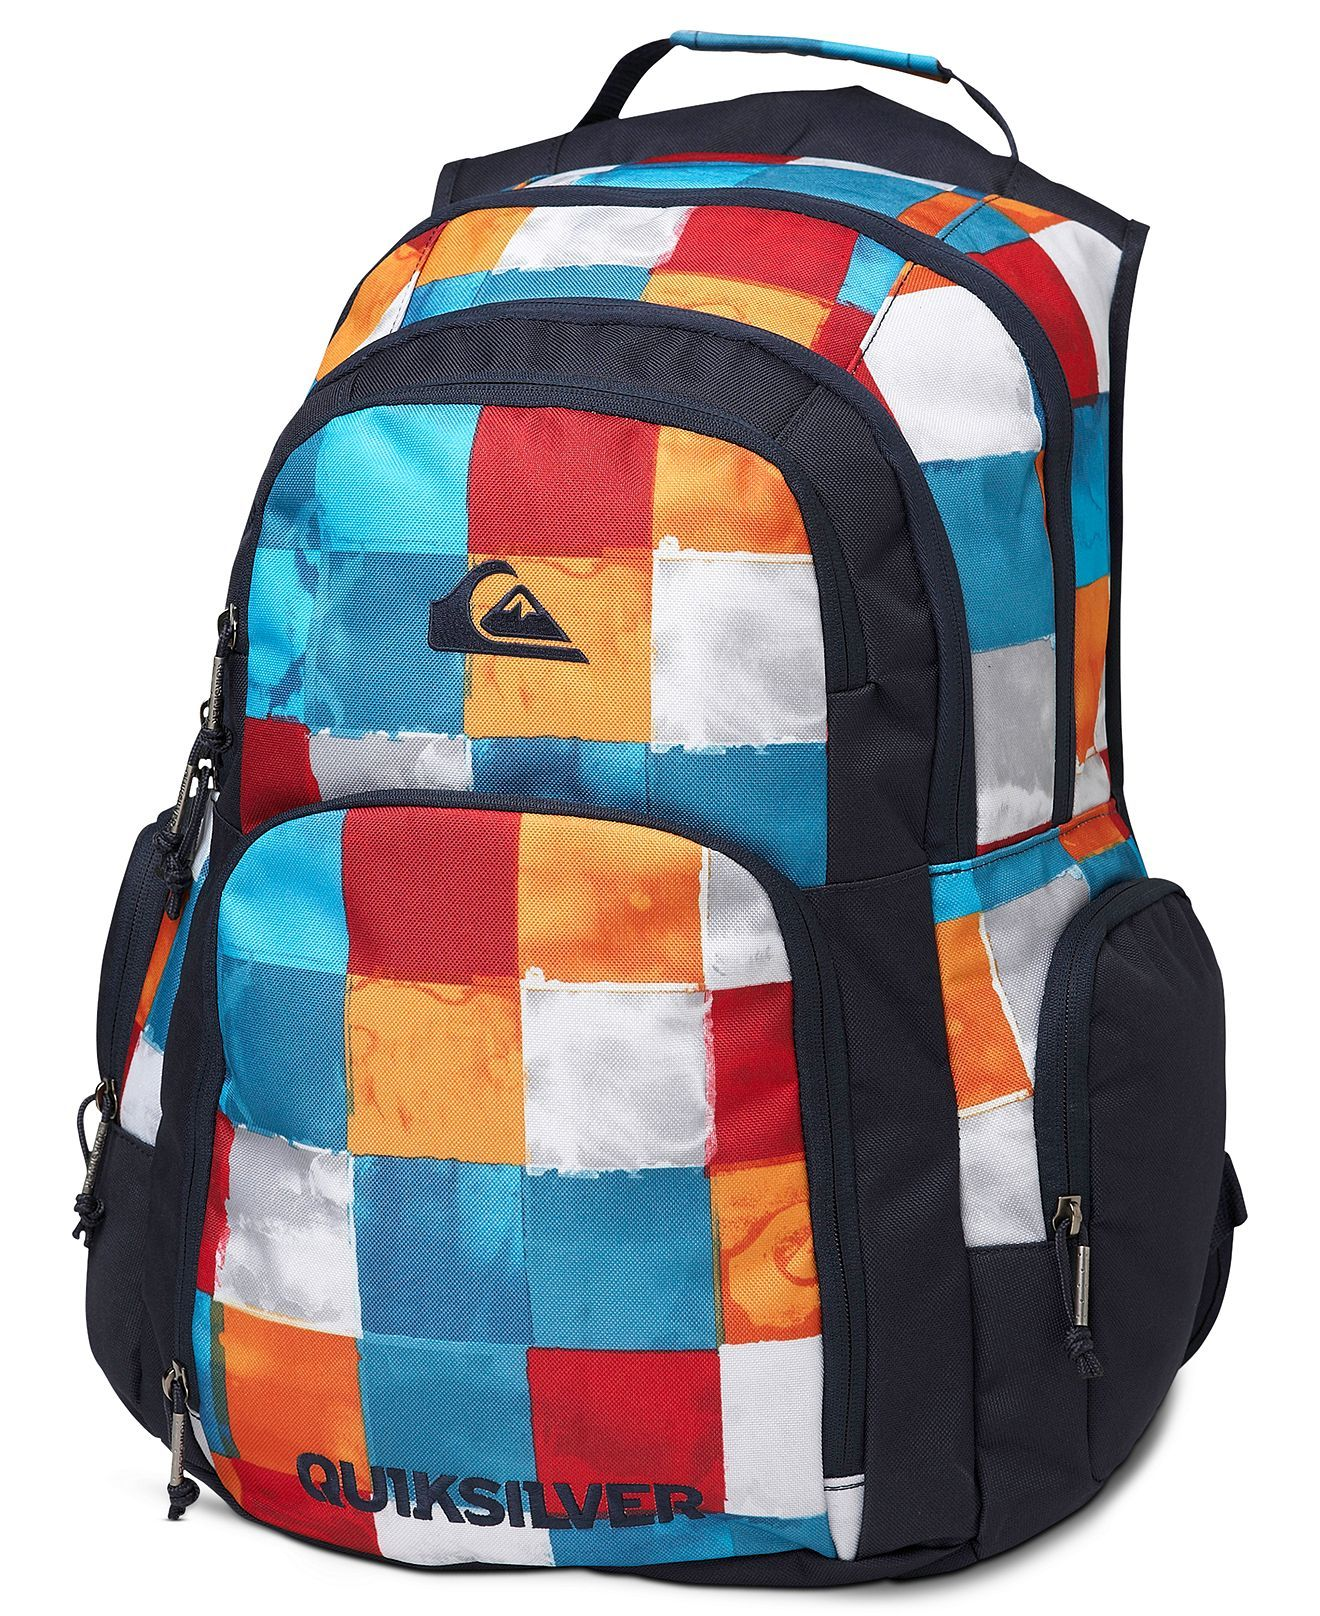 679da509b4b8 Quiksilver Backpack